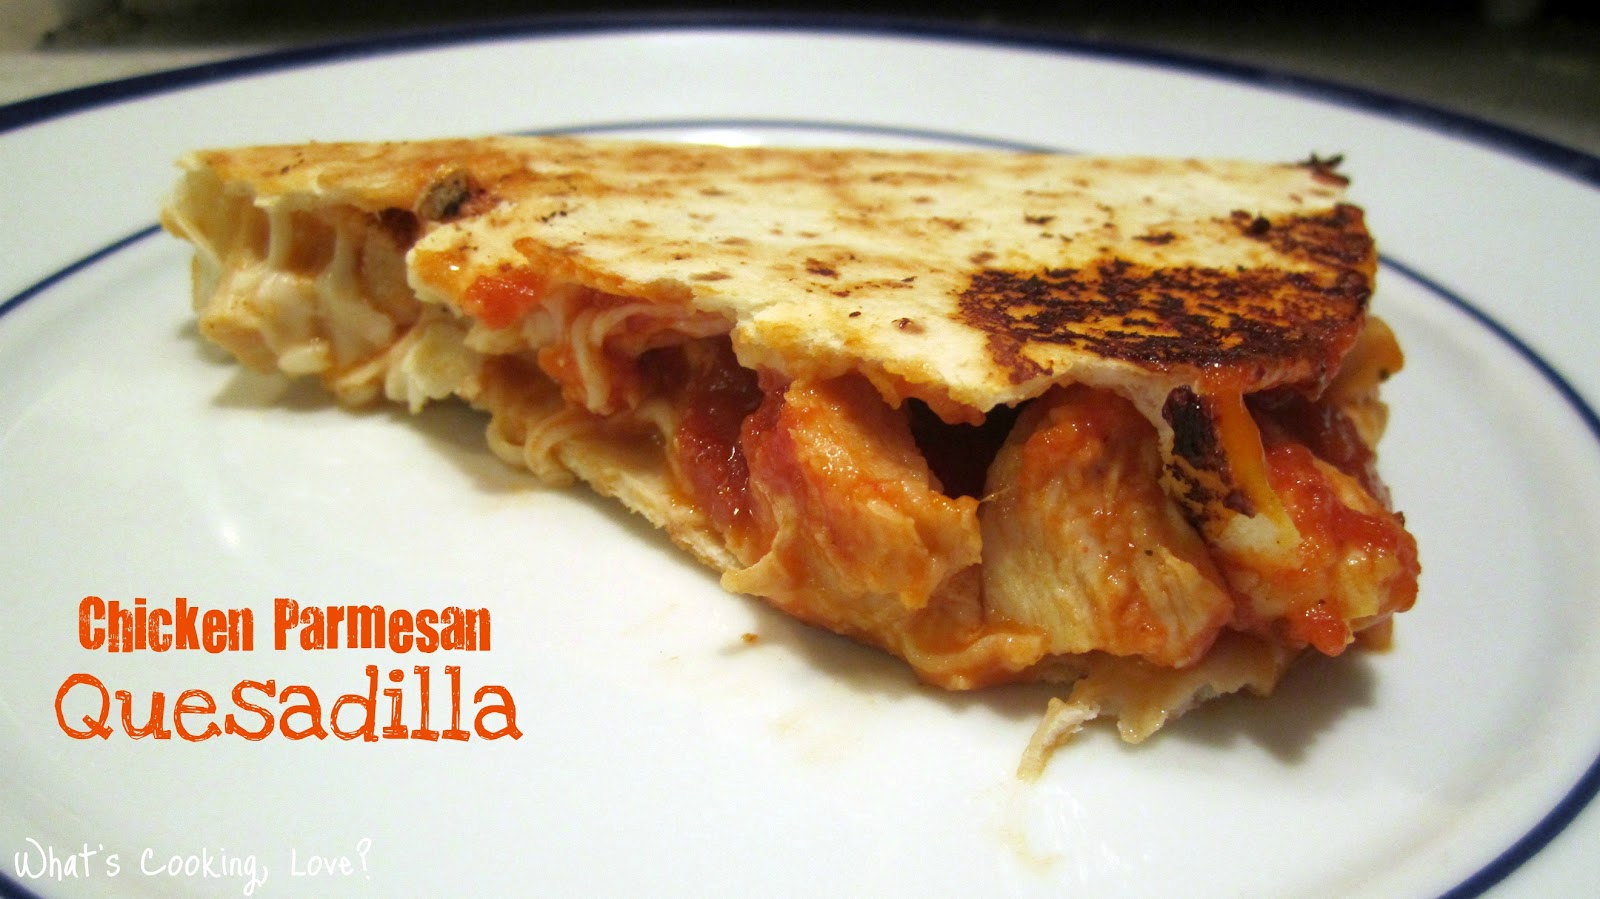 Chicken Parmesan Quesadilla - Whats Cooking Love?